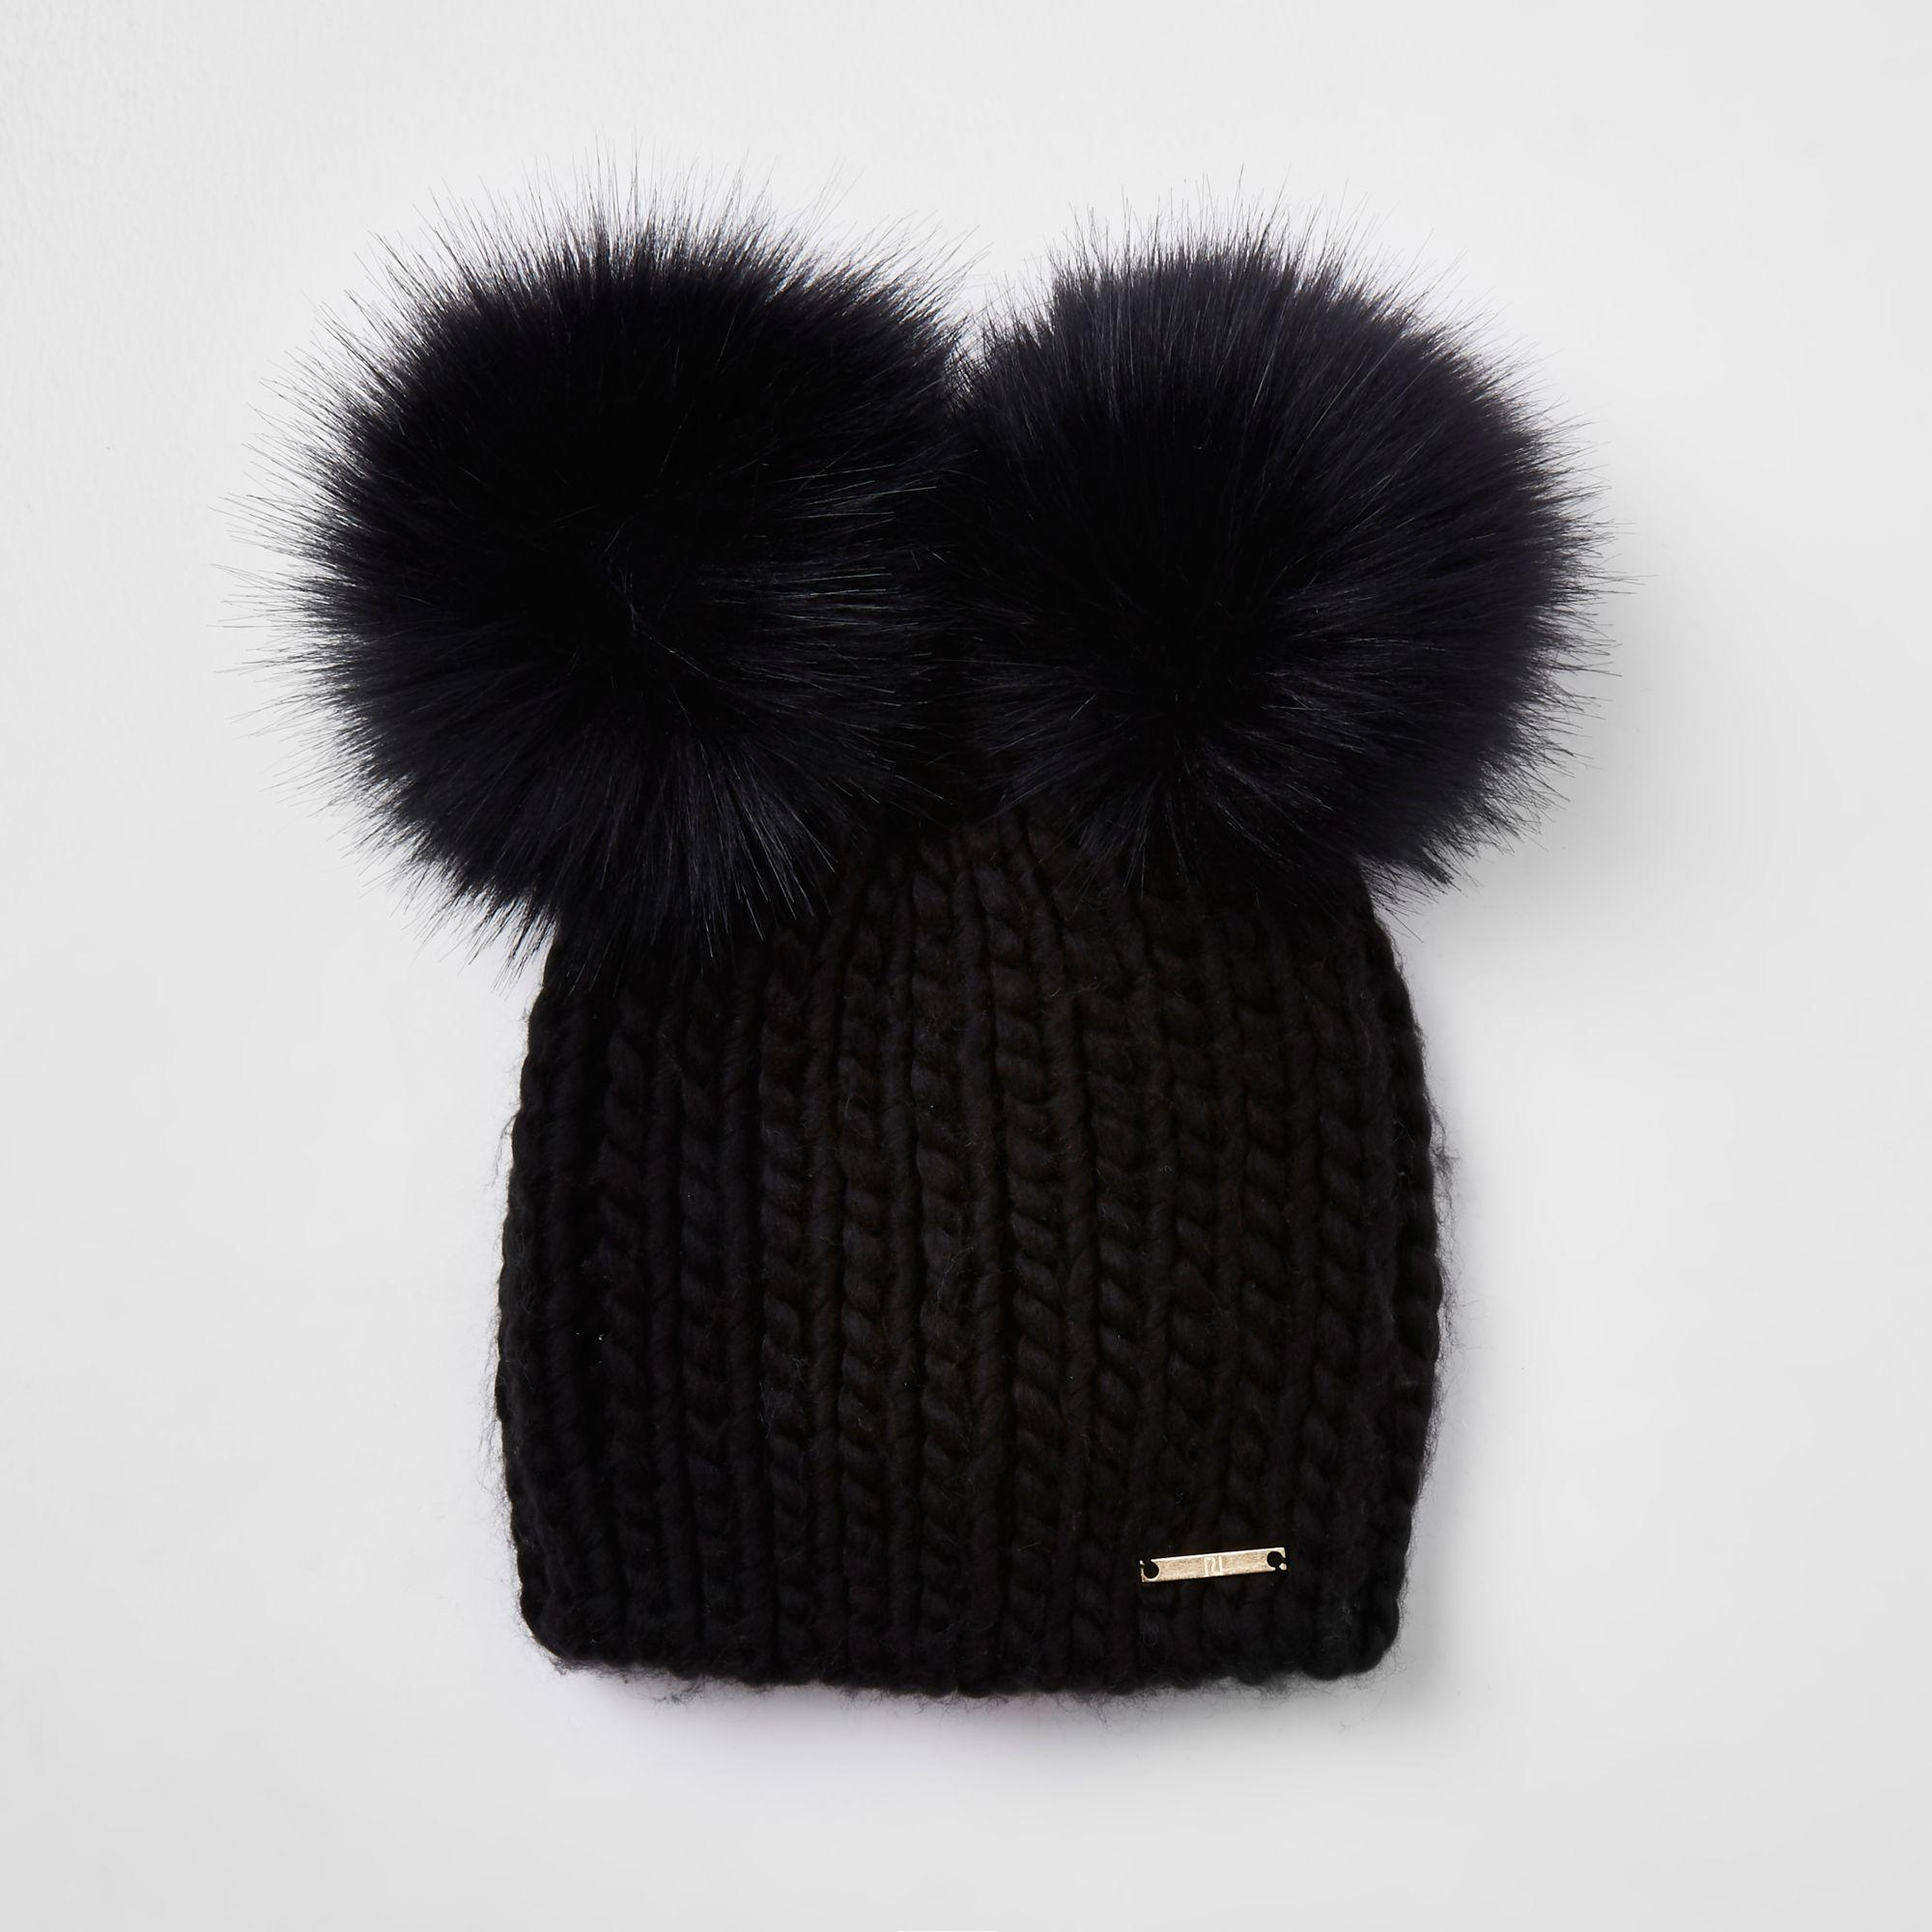 3a647d35cf9 River Island Faux Fur Double Pom Pom Beanie in Black - Lyst